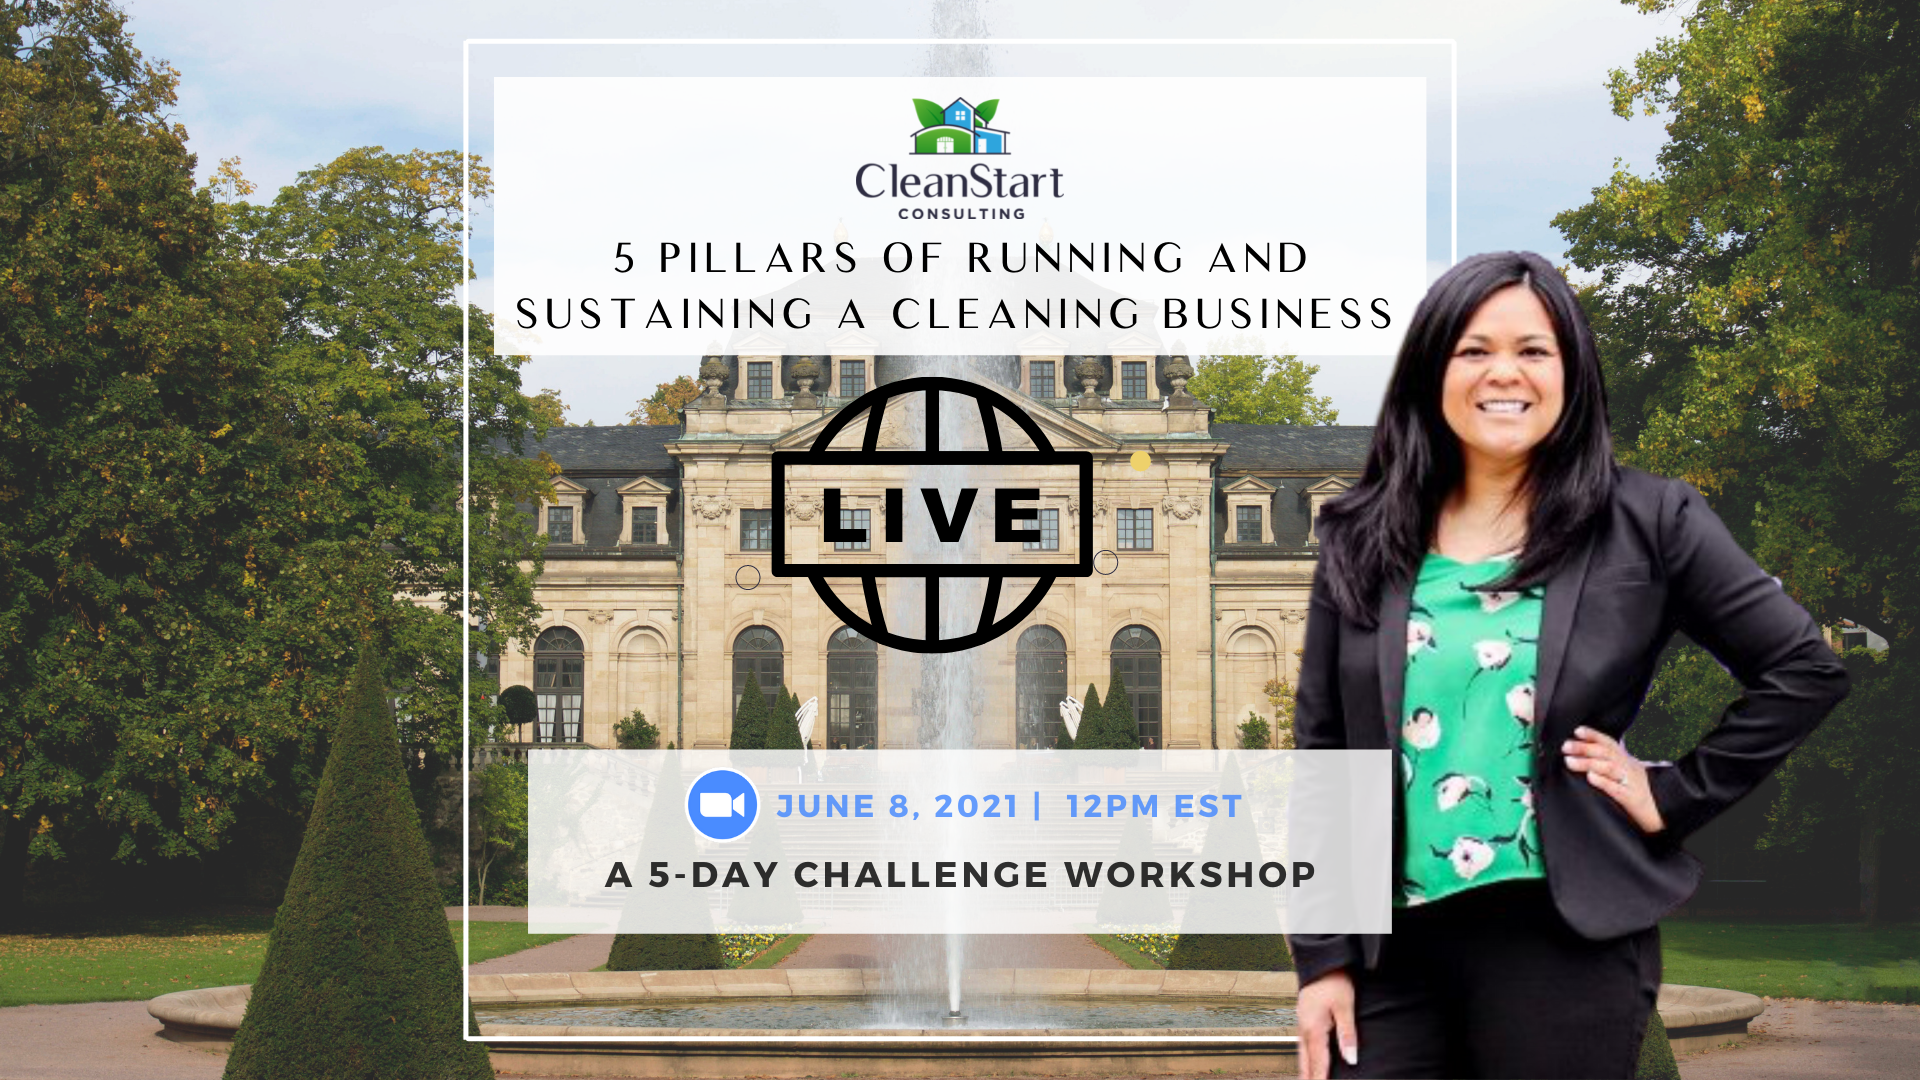 5 Pillars of Running and Sustaining a cleaning Business Workshop